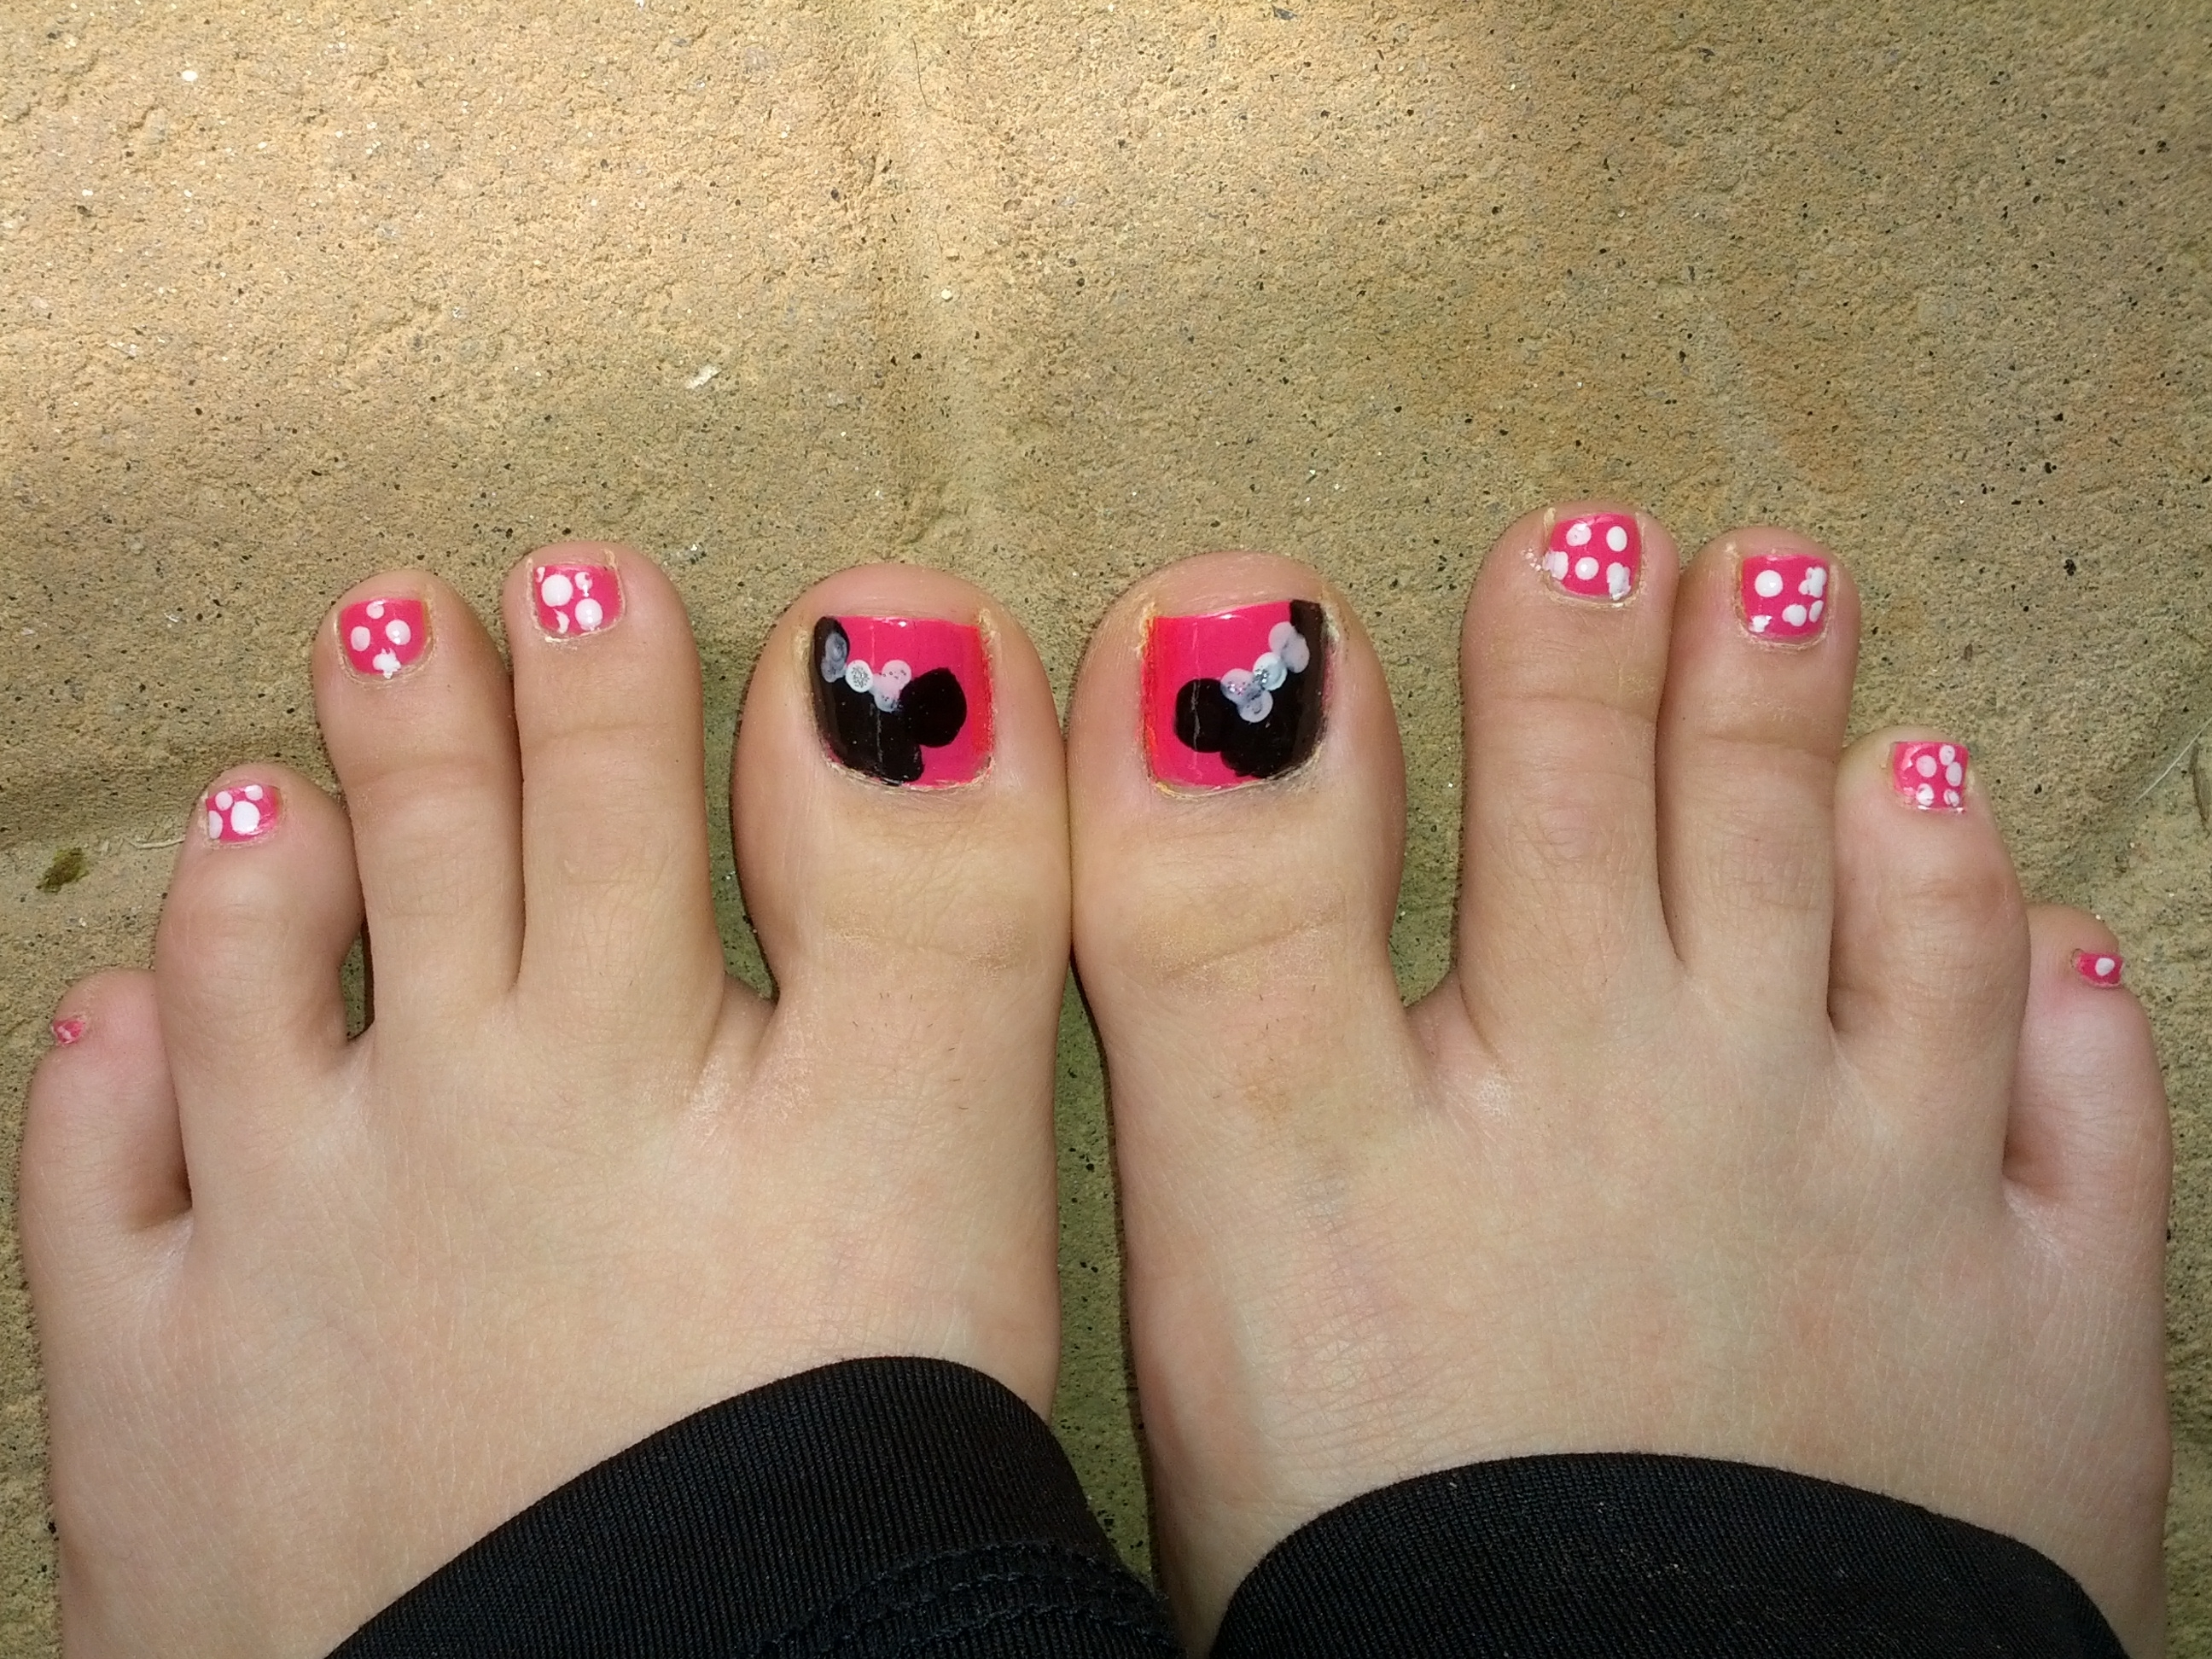 Nail Art, Toes, Disney, Mini Mouse, Pink, Princess | Nail Art Intended For Current Mickey Mouse Toe Rings (Gallery 9 of 15)